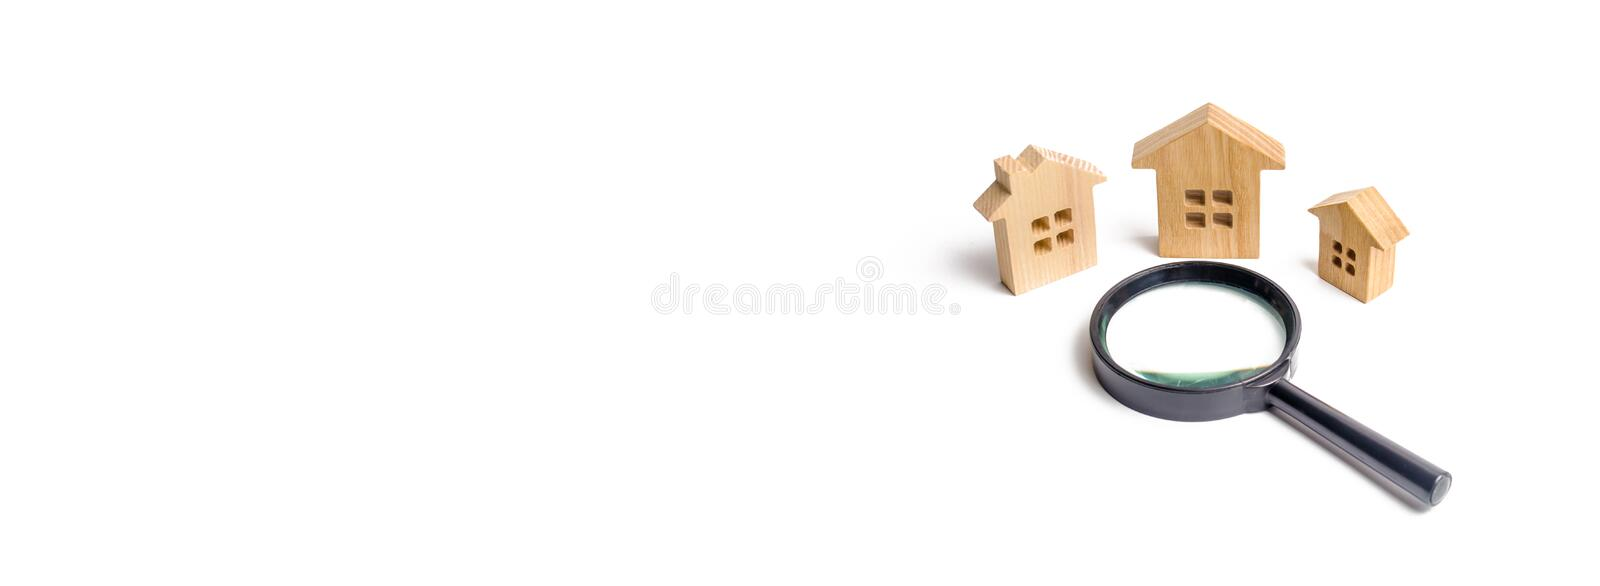 three wooden houses on a white background. The concept of urban planning, infrastructure projects. Buying and selling real estate royalty free stock images